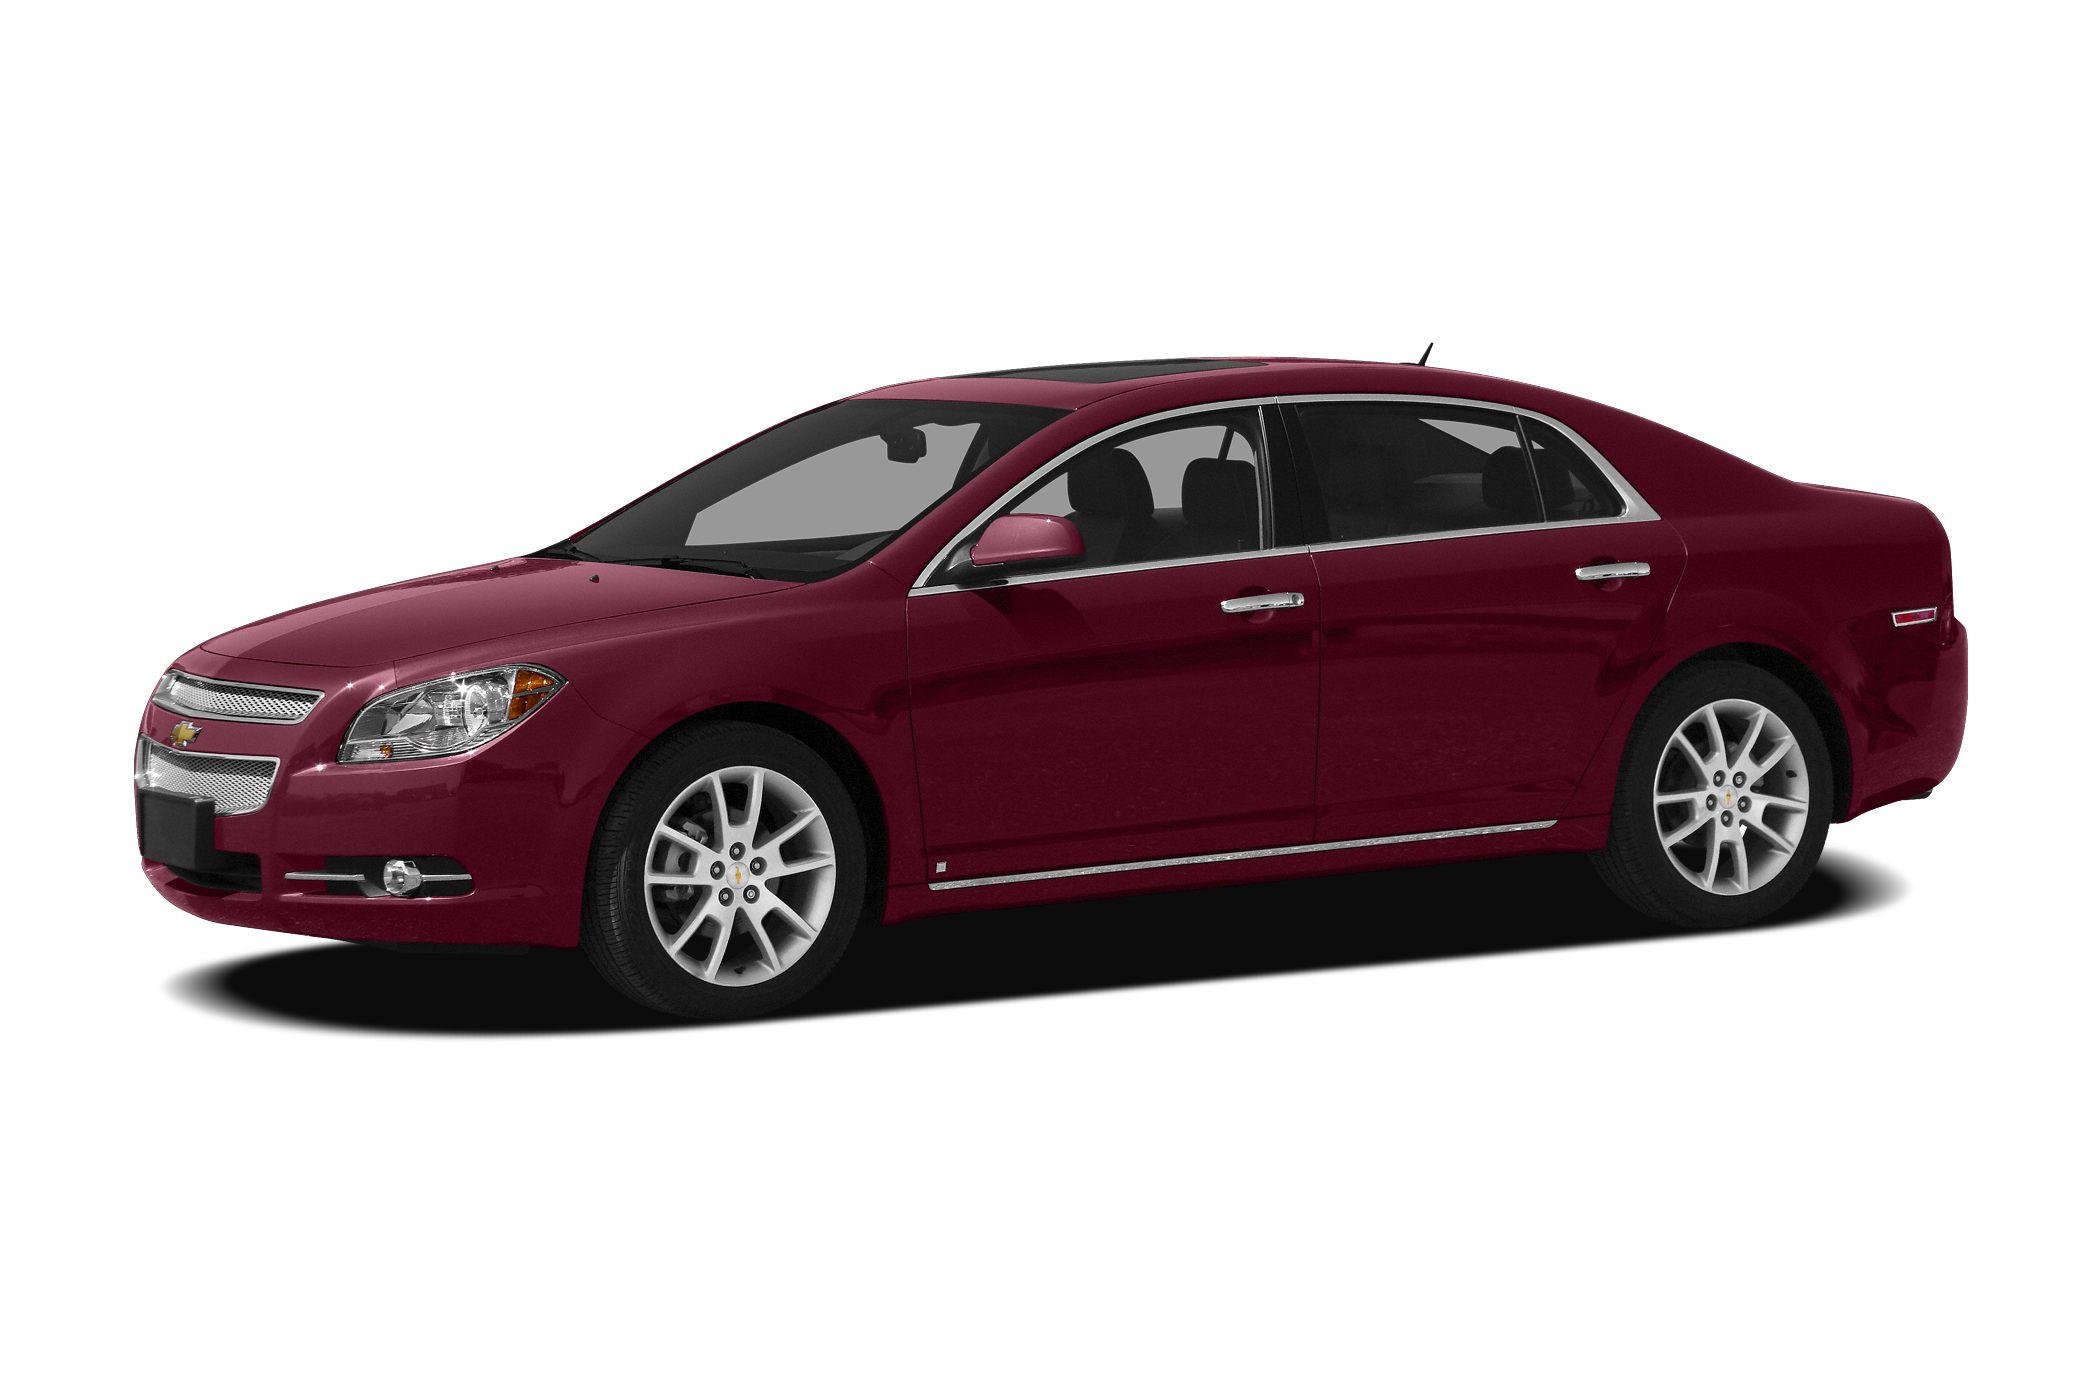 2009 Chevrolet Malibu LS Sedan for sale in Mandeville for $7,995 with 142,383 miles.